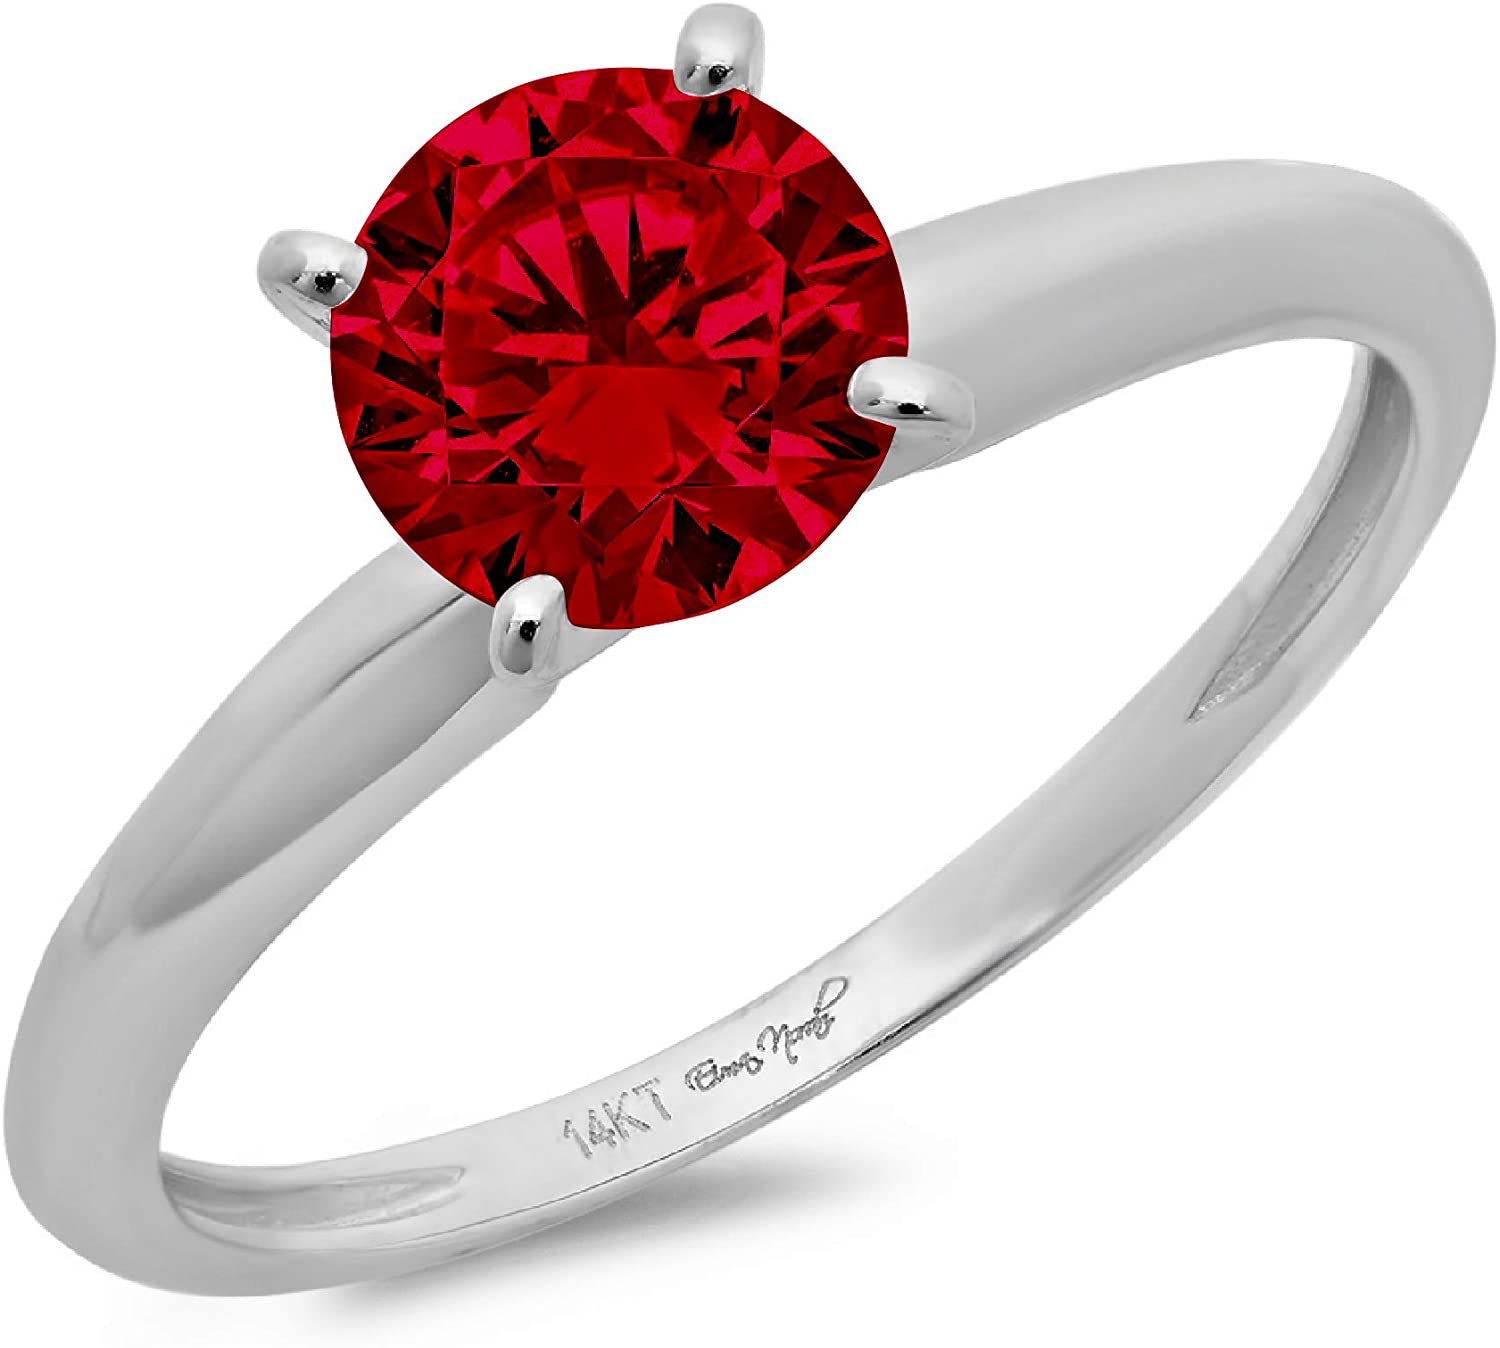 0.4ct Brilliant Round Cut Solitaire Natural Crimson Deep Red Garnet Ideal VVS1 4-Prong Engagement Wedding Bridal Promise Anniversary Ring in Solid 14k white Gold for Women